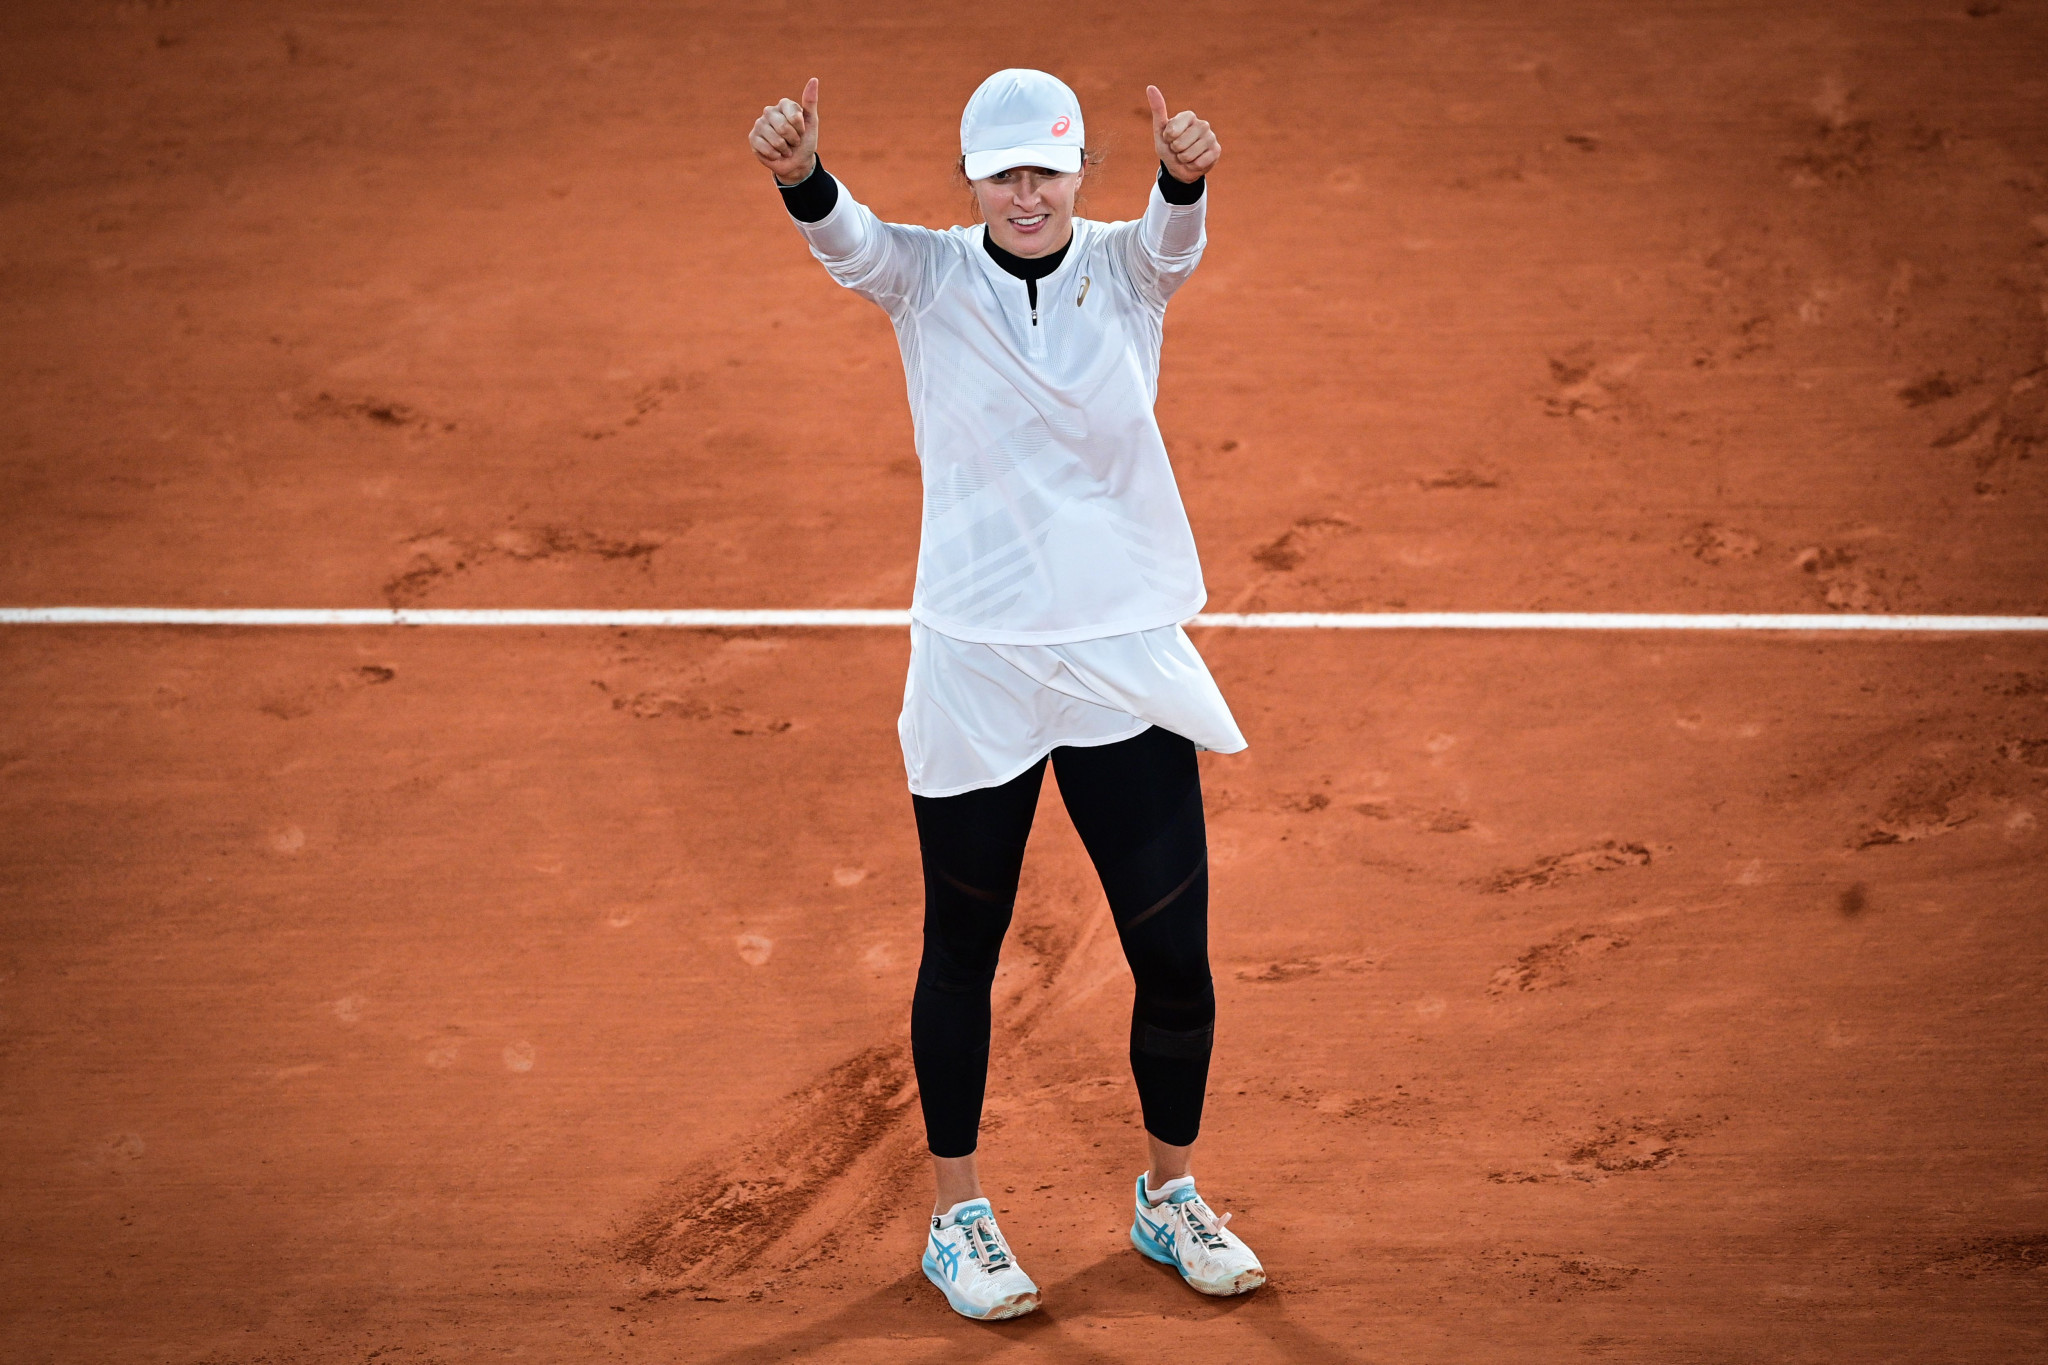 Polish teenager Iga Swiatek celebrates with a thumbs-up after following up her win over top seed Simona Halep by beating Martina Trevisan ©Getty Images